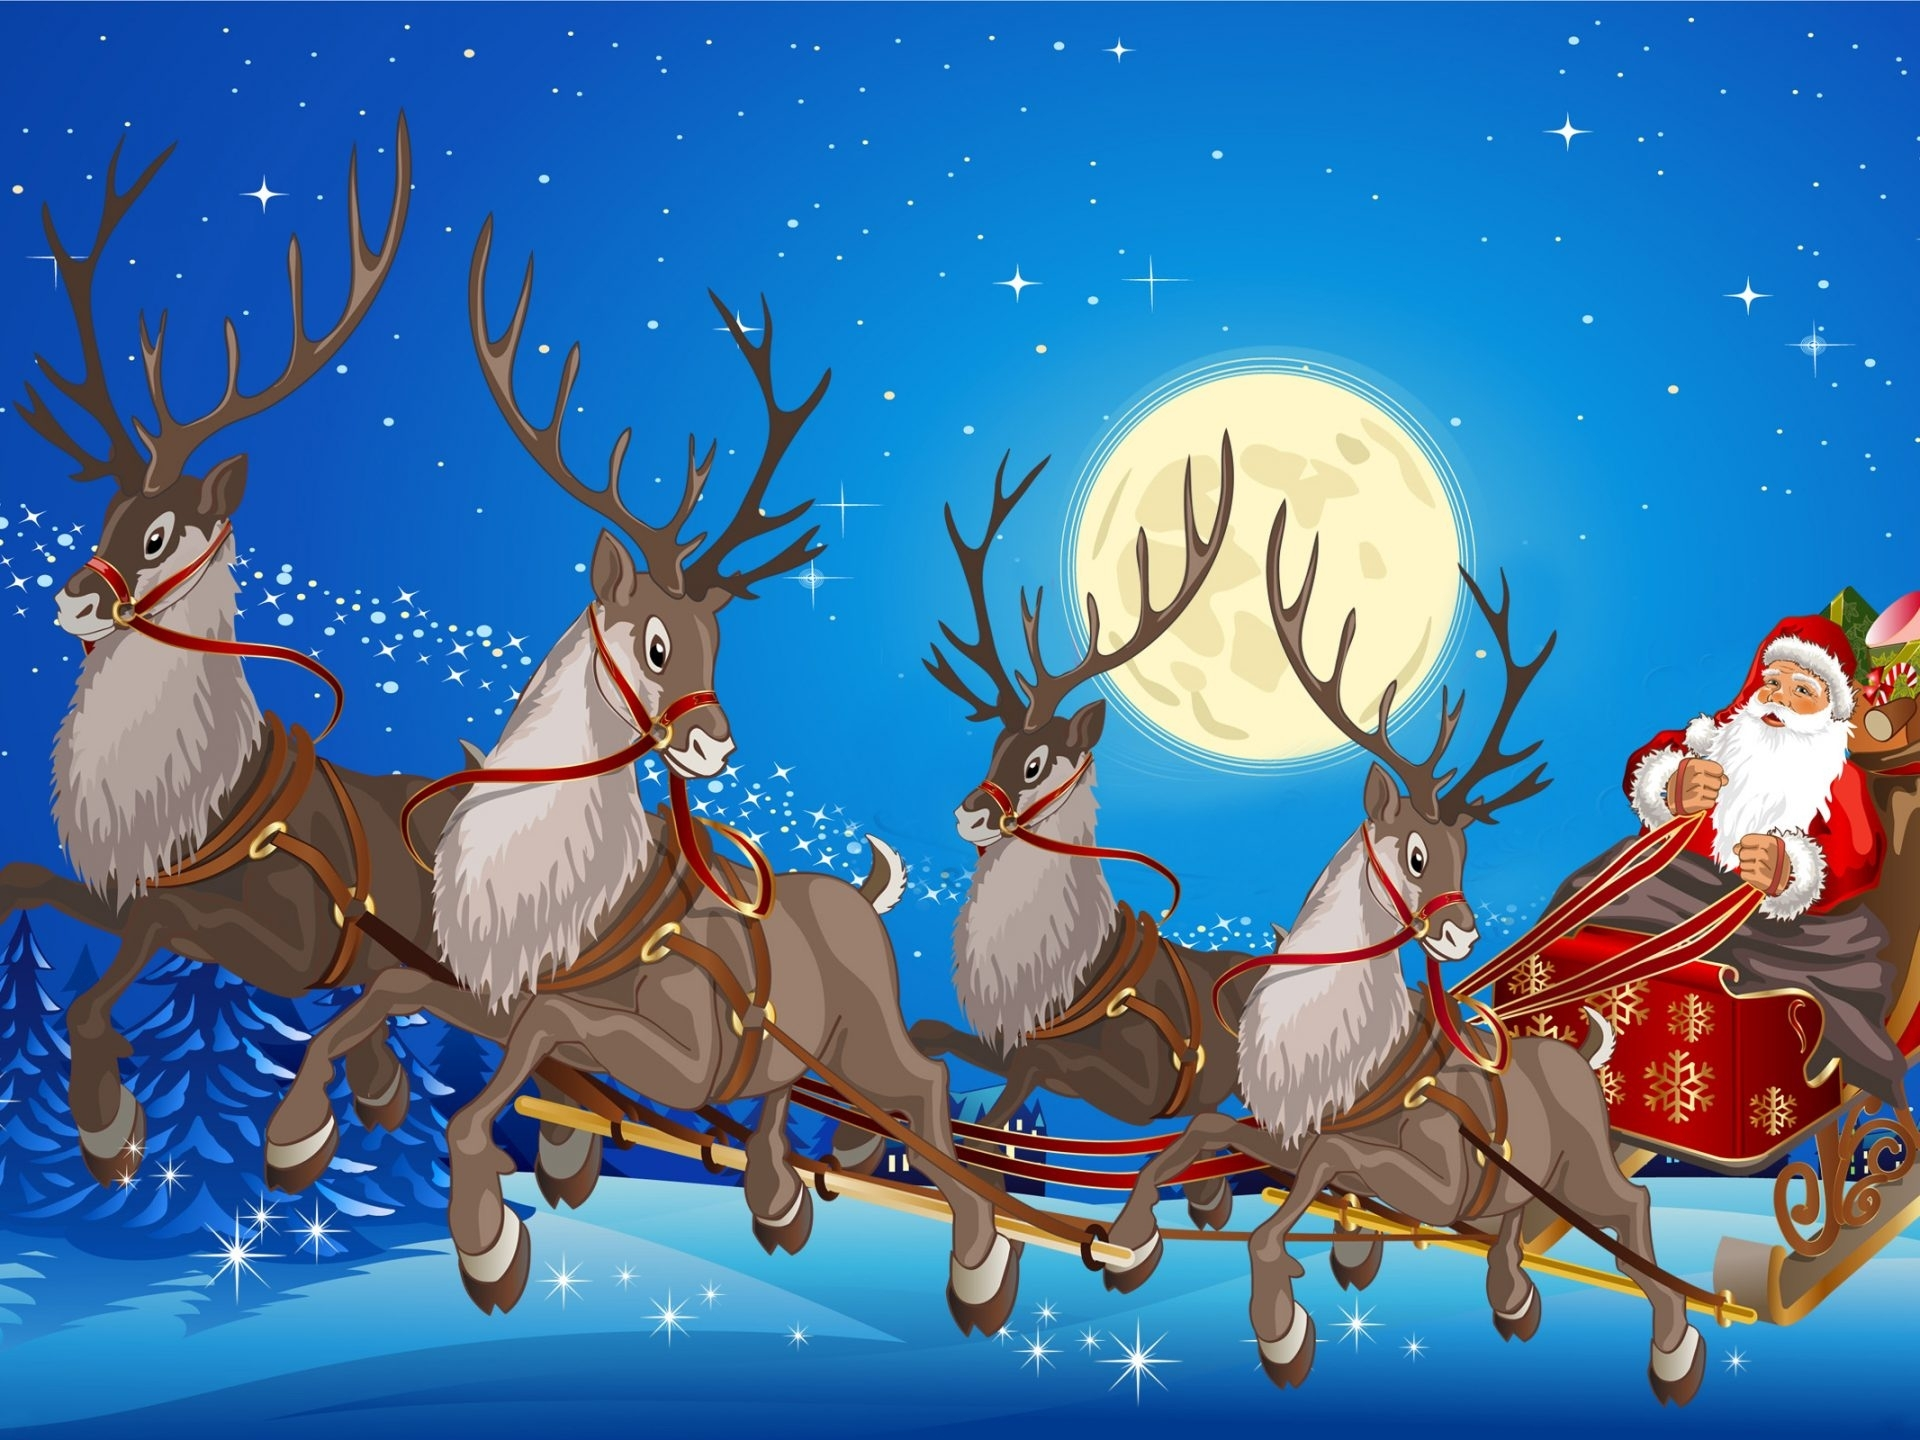 santa claus sleigh with reindeer gifts full moon desktop wallpaper